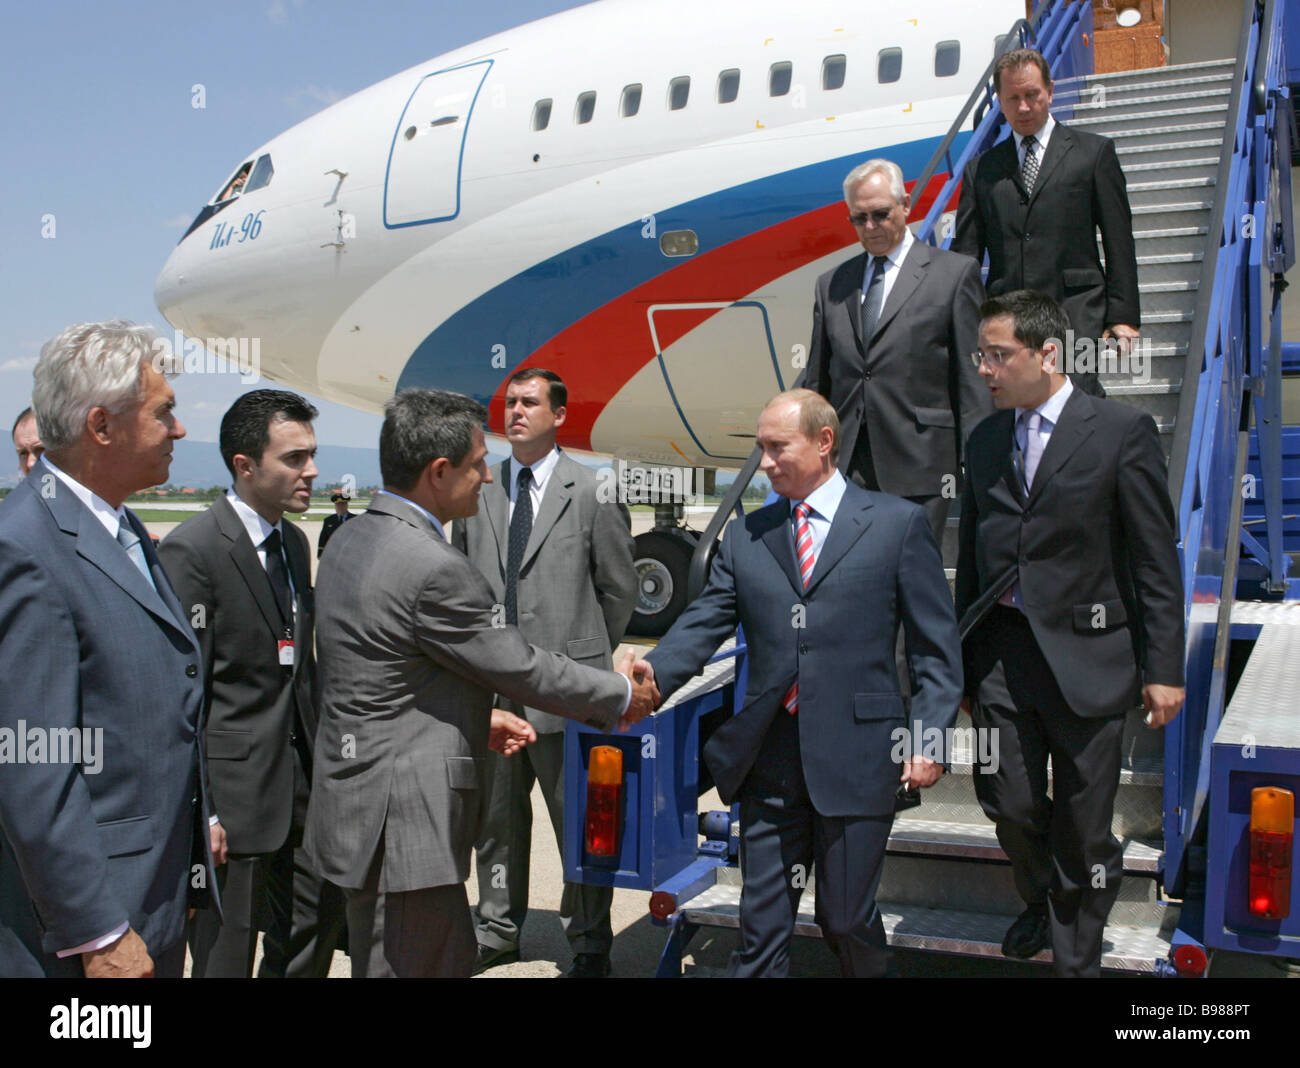 Russian President Vladimir Putin 2nd to the right at the Pleso Airport in Zagreb Croatia - Stock Image